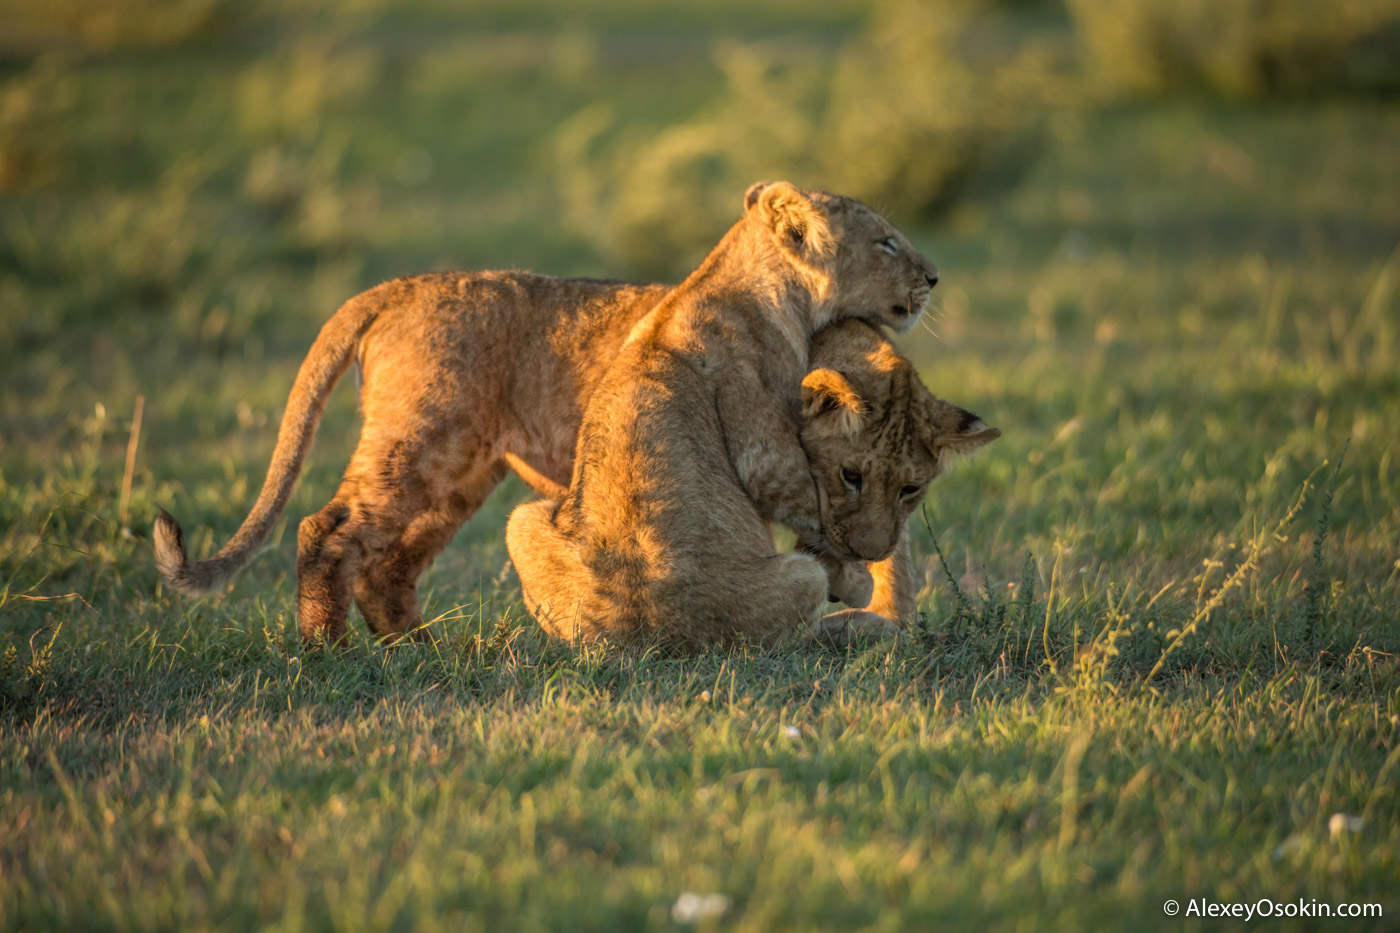 Two_Lion_cubs_from_Sandriver_pride, feb.2017.jpg